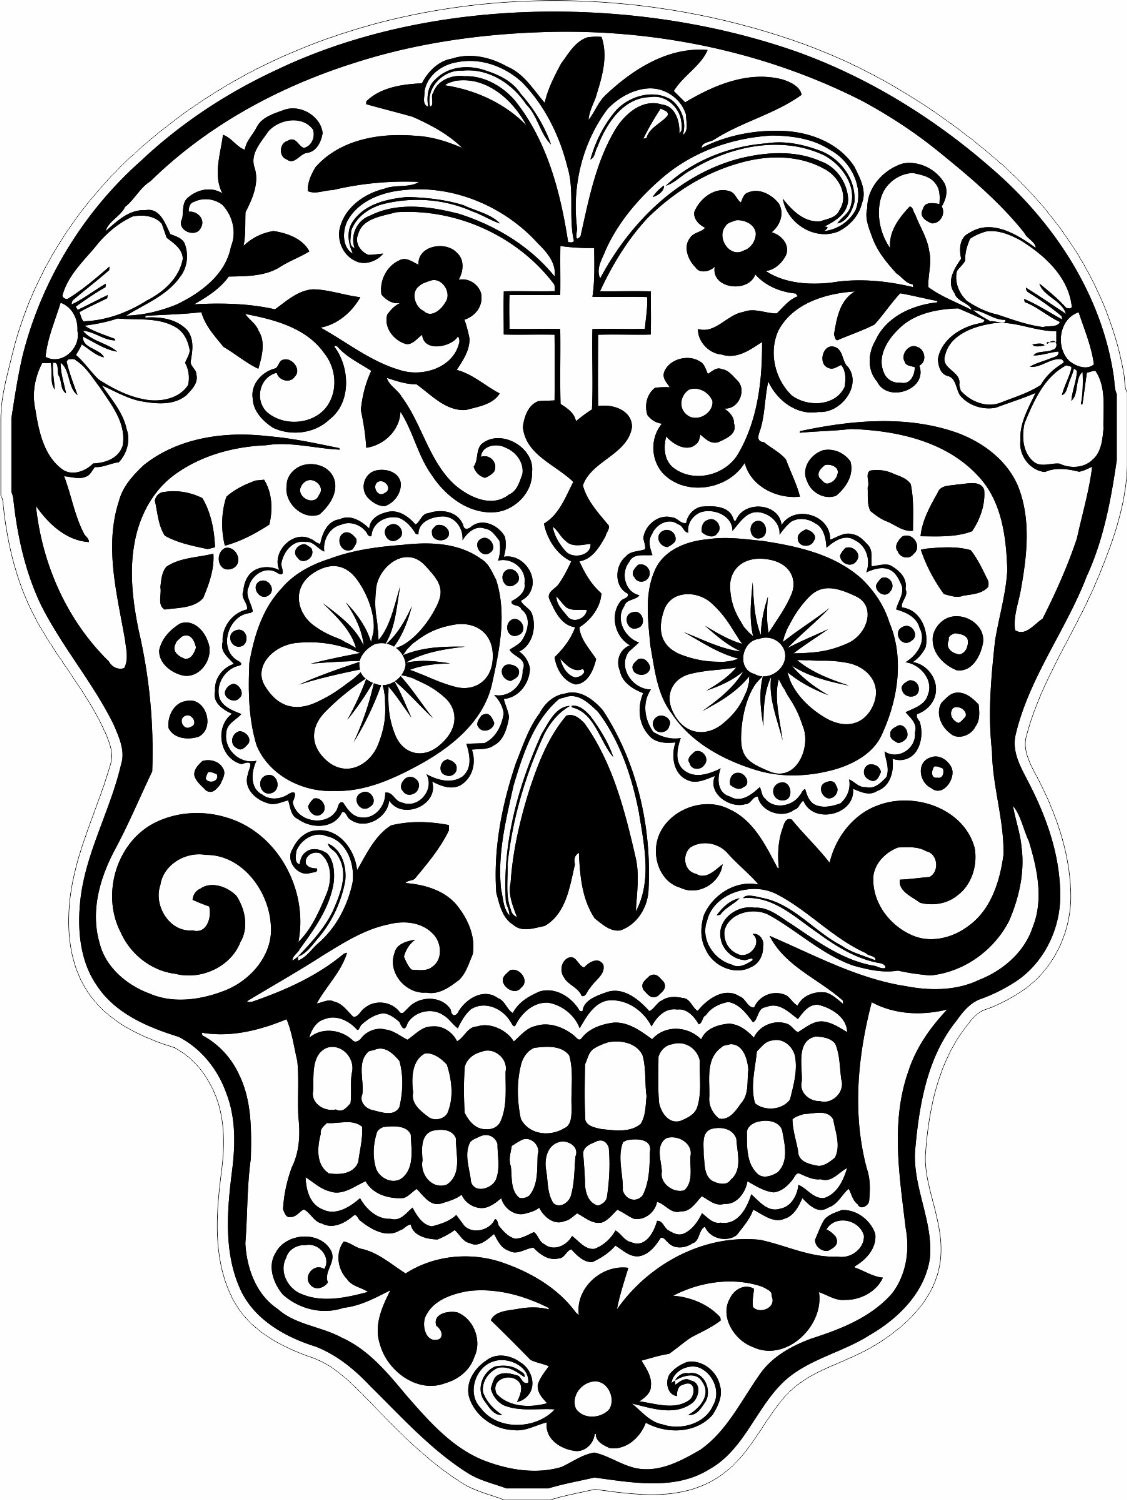 Printable Sugar Skulls Coloring Pages  Sugar Skull Coloring Pages coloringsuite